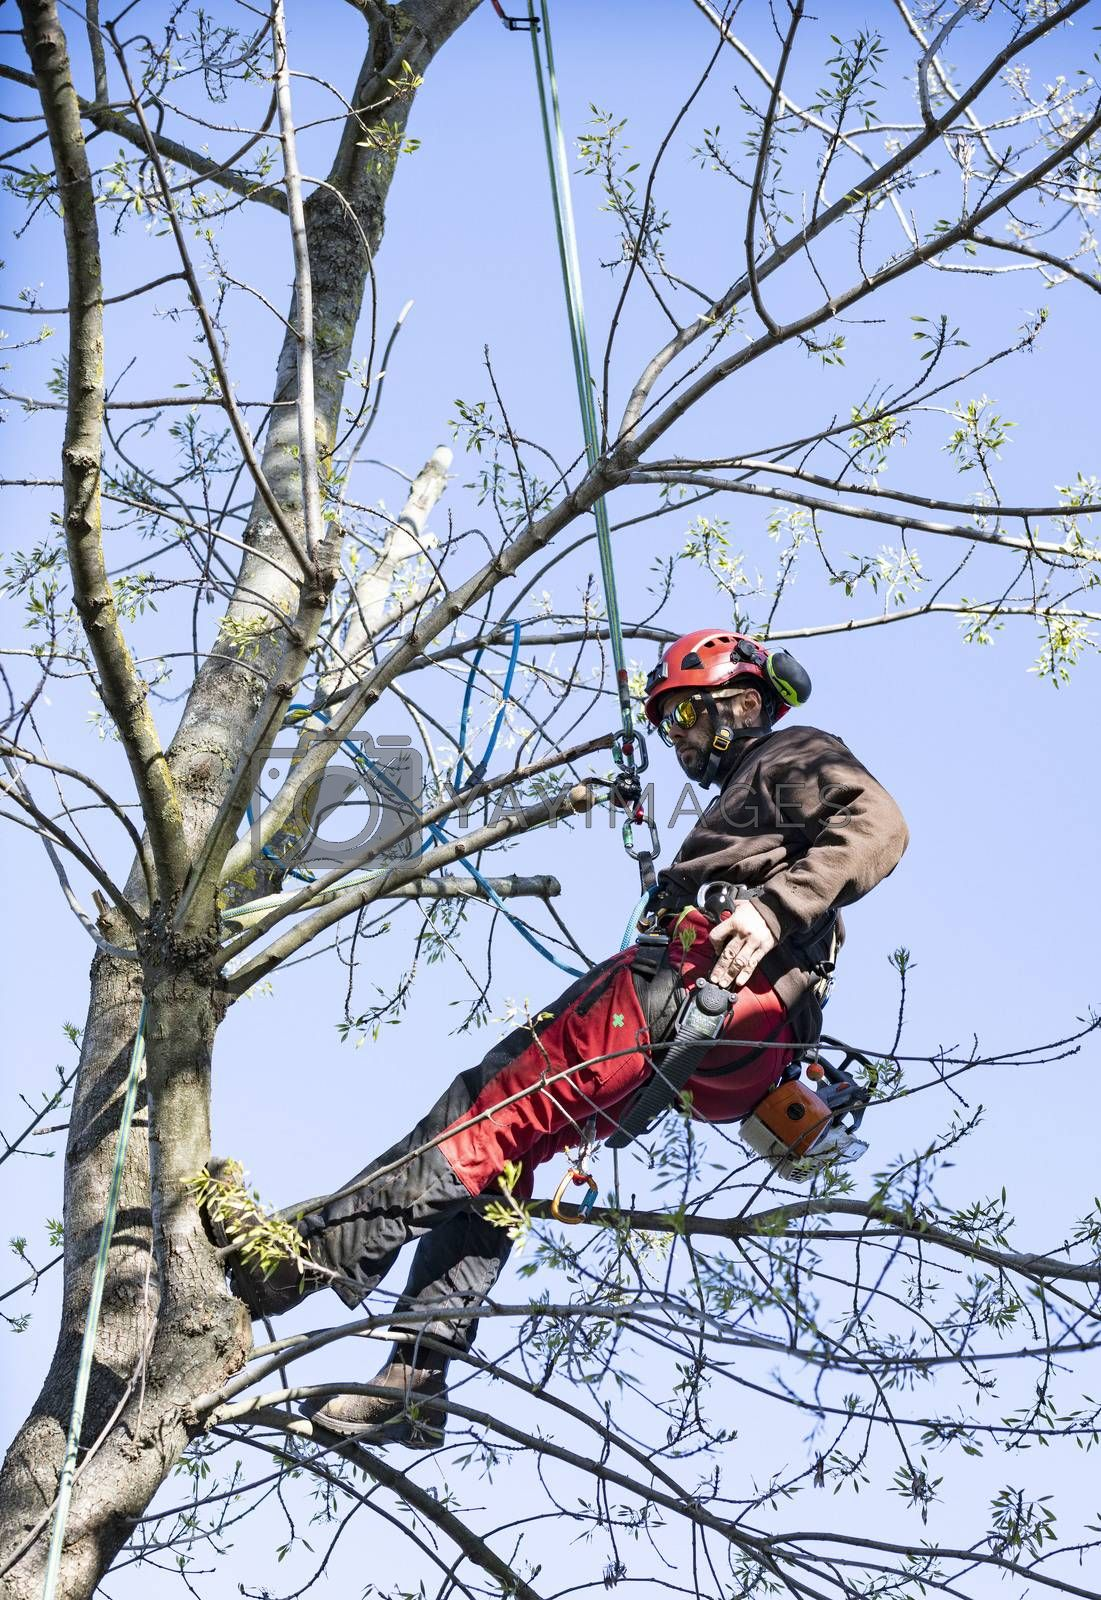 Lumberjack with chainsaw and harness pruning a tree